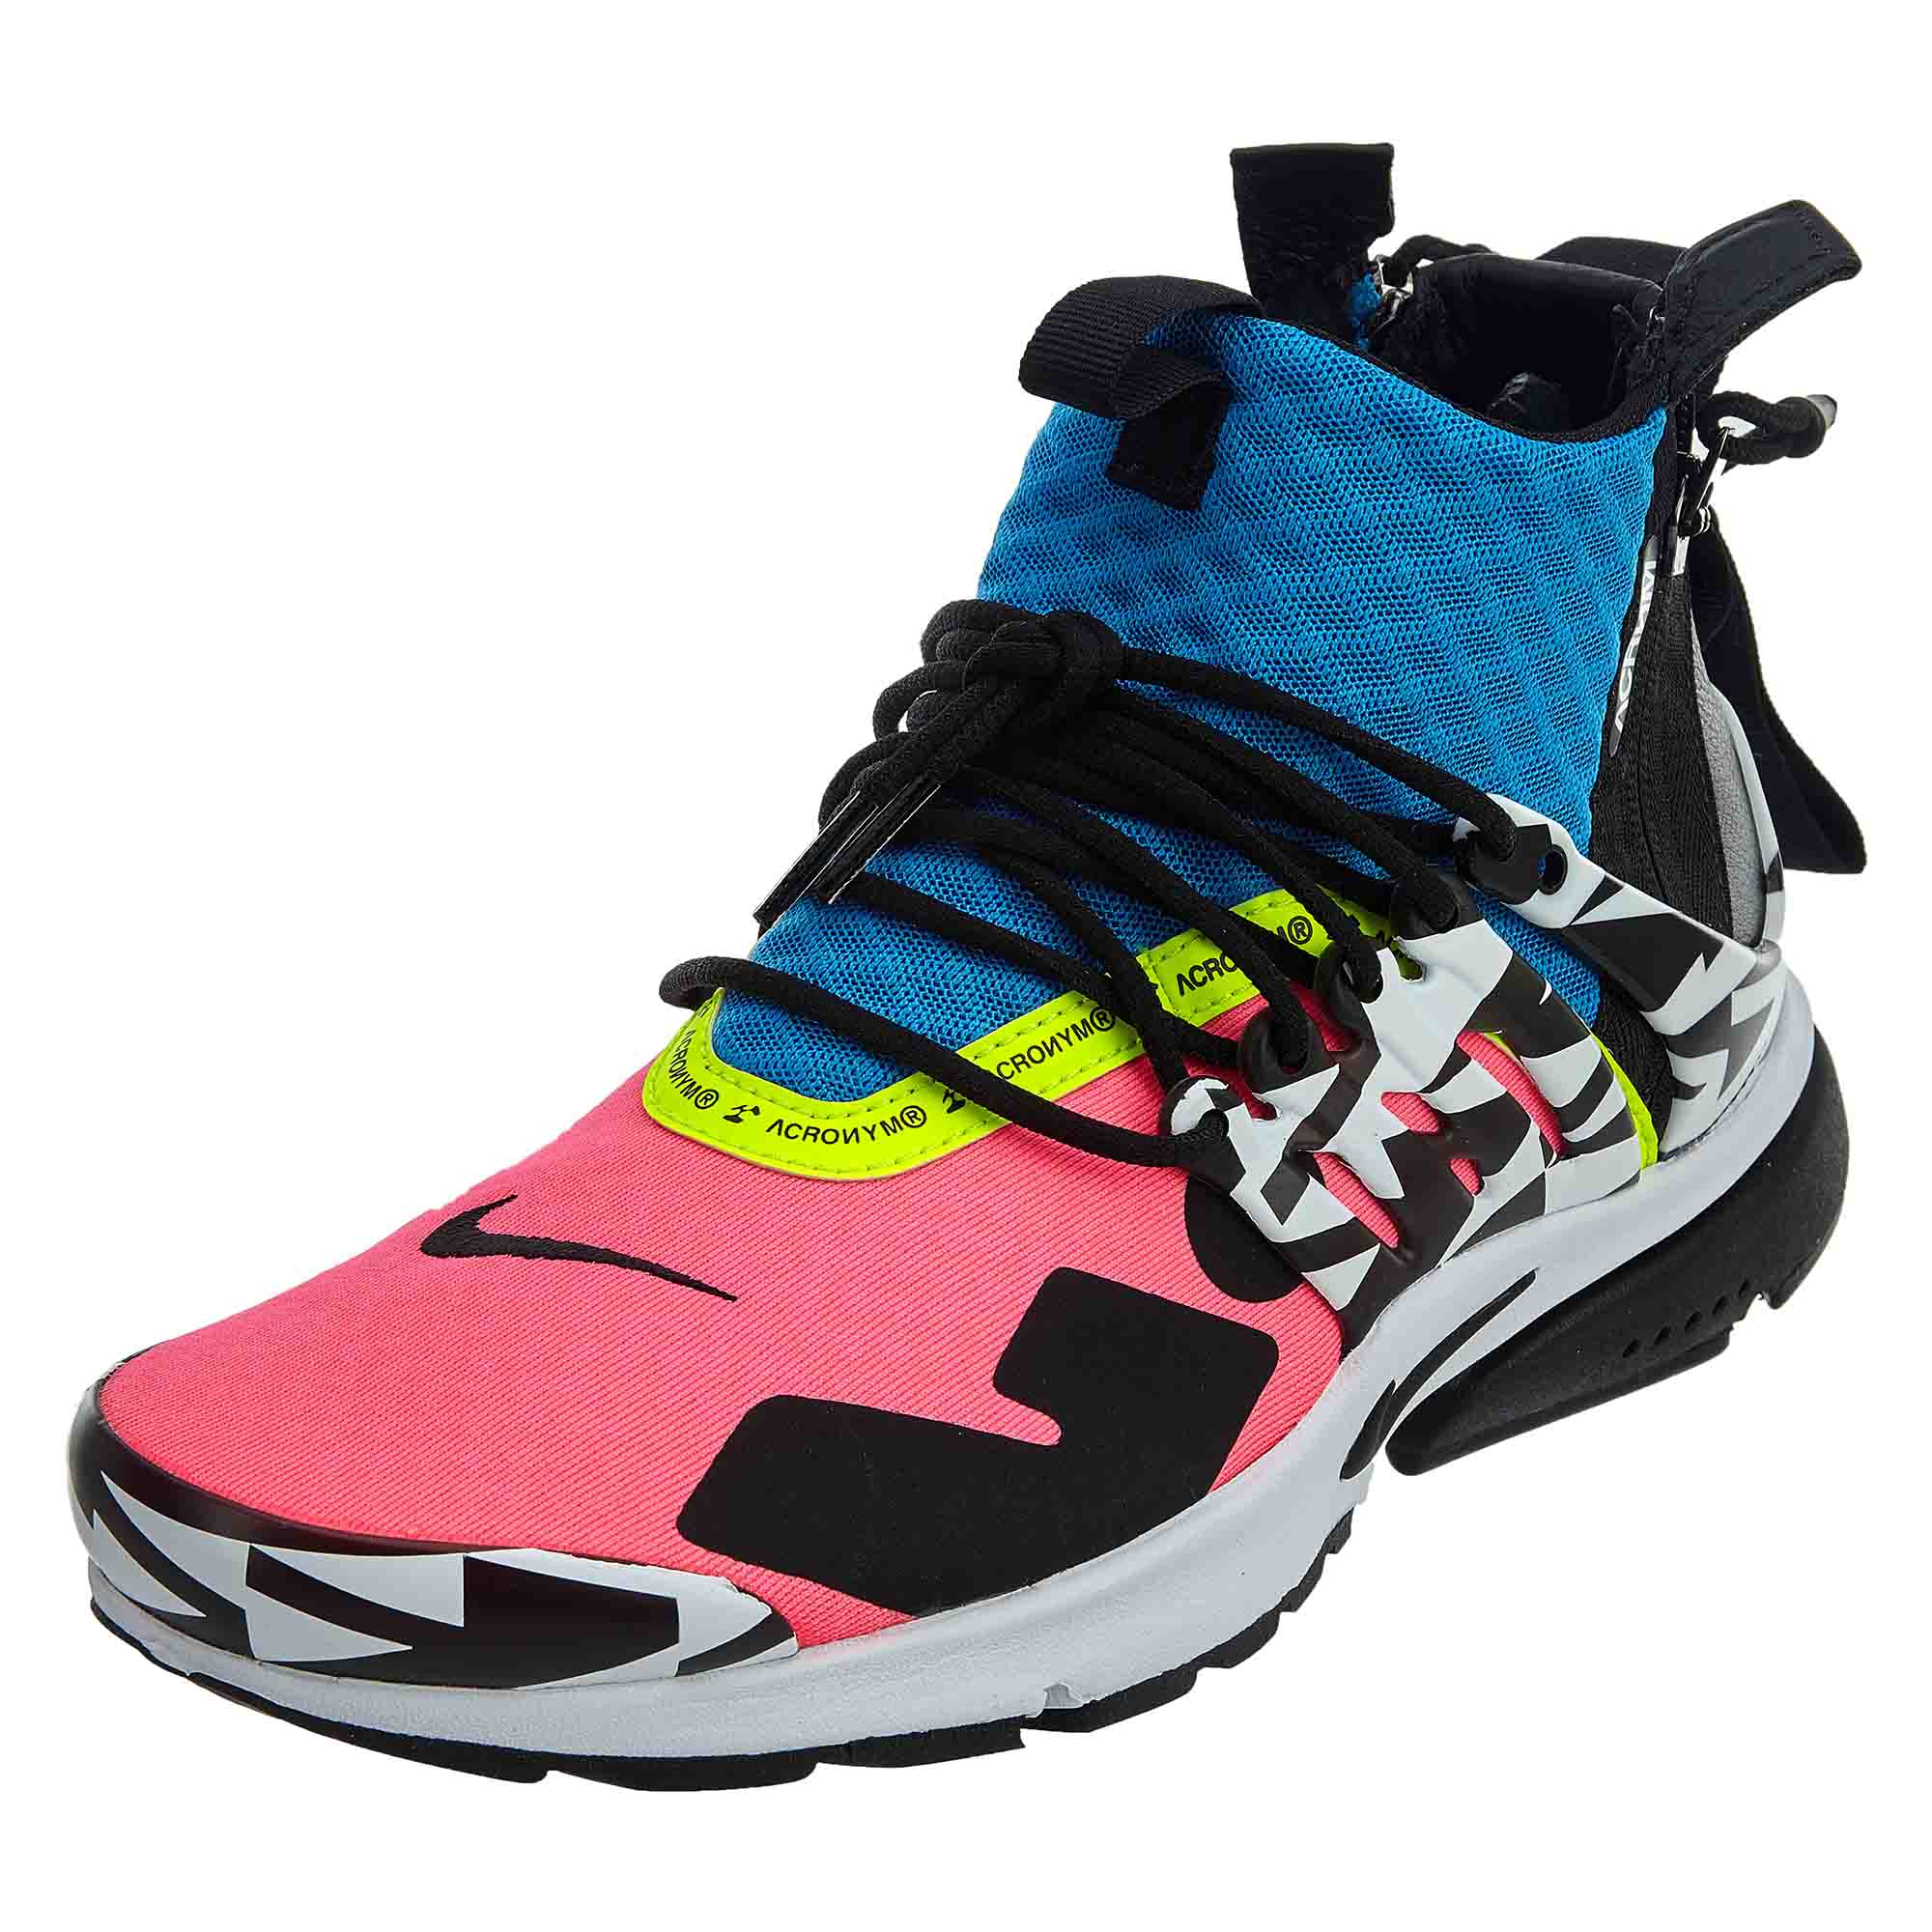 newest 4d7b5 9501f Details about Nike Mens Air Presto Mid Acronym Shoes AH7832-600